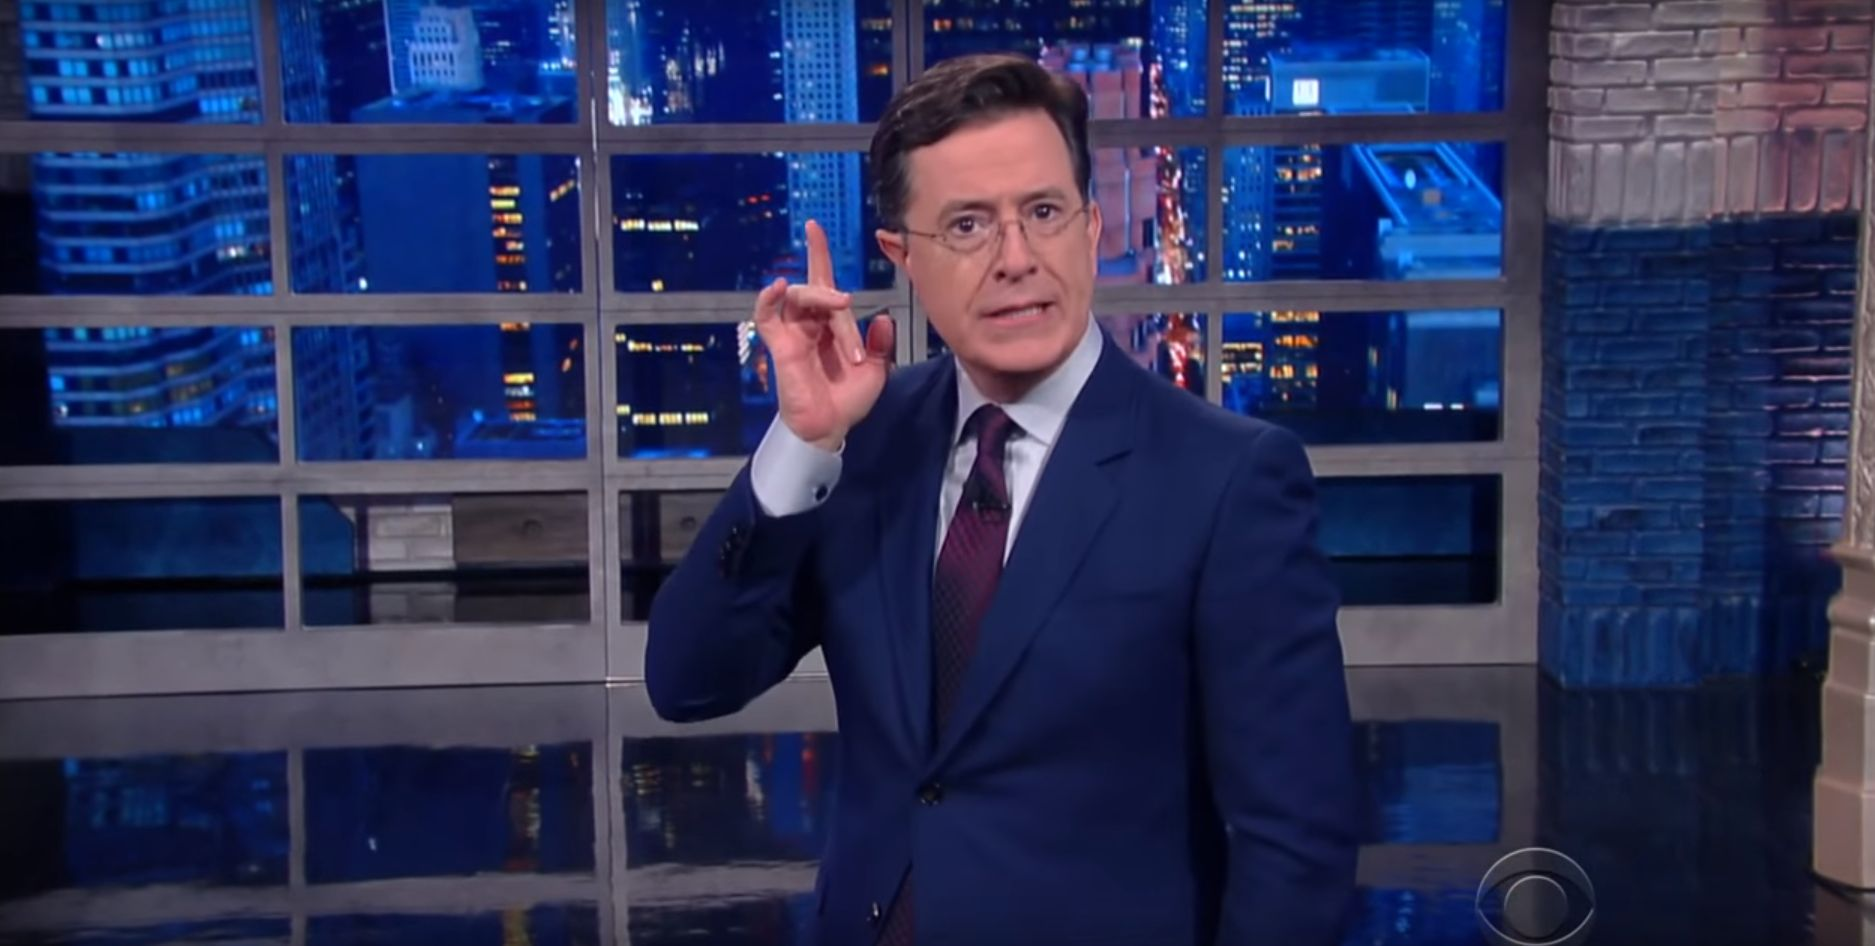 Stephen Colbert wants to make sure you never, ever confuse 'LoTR''s Smeagol and Gollum